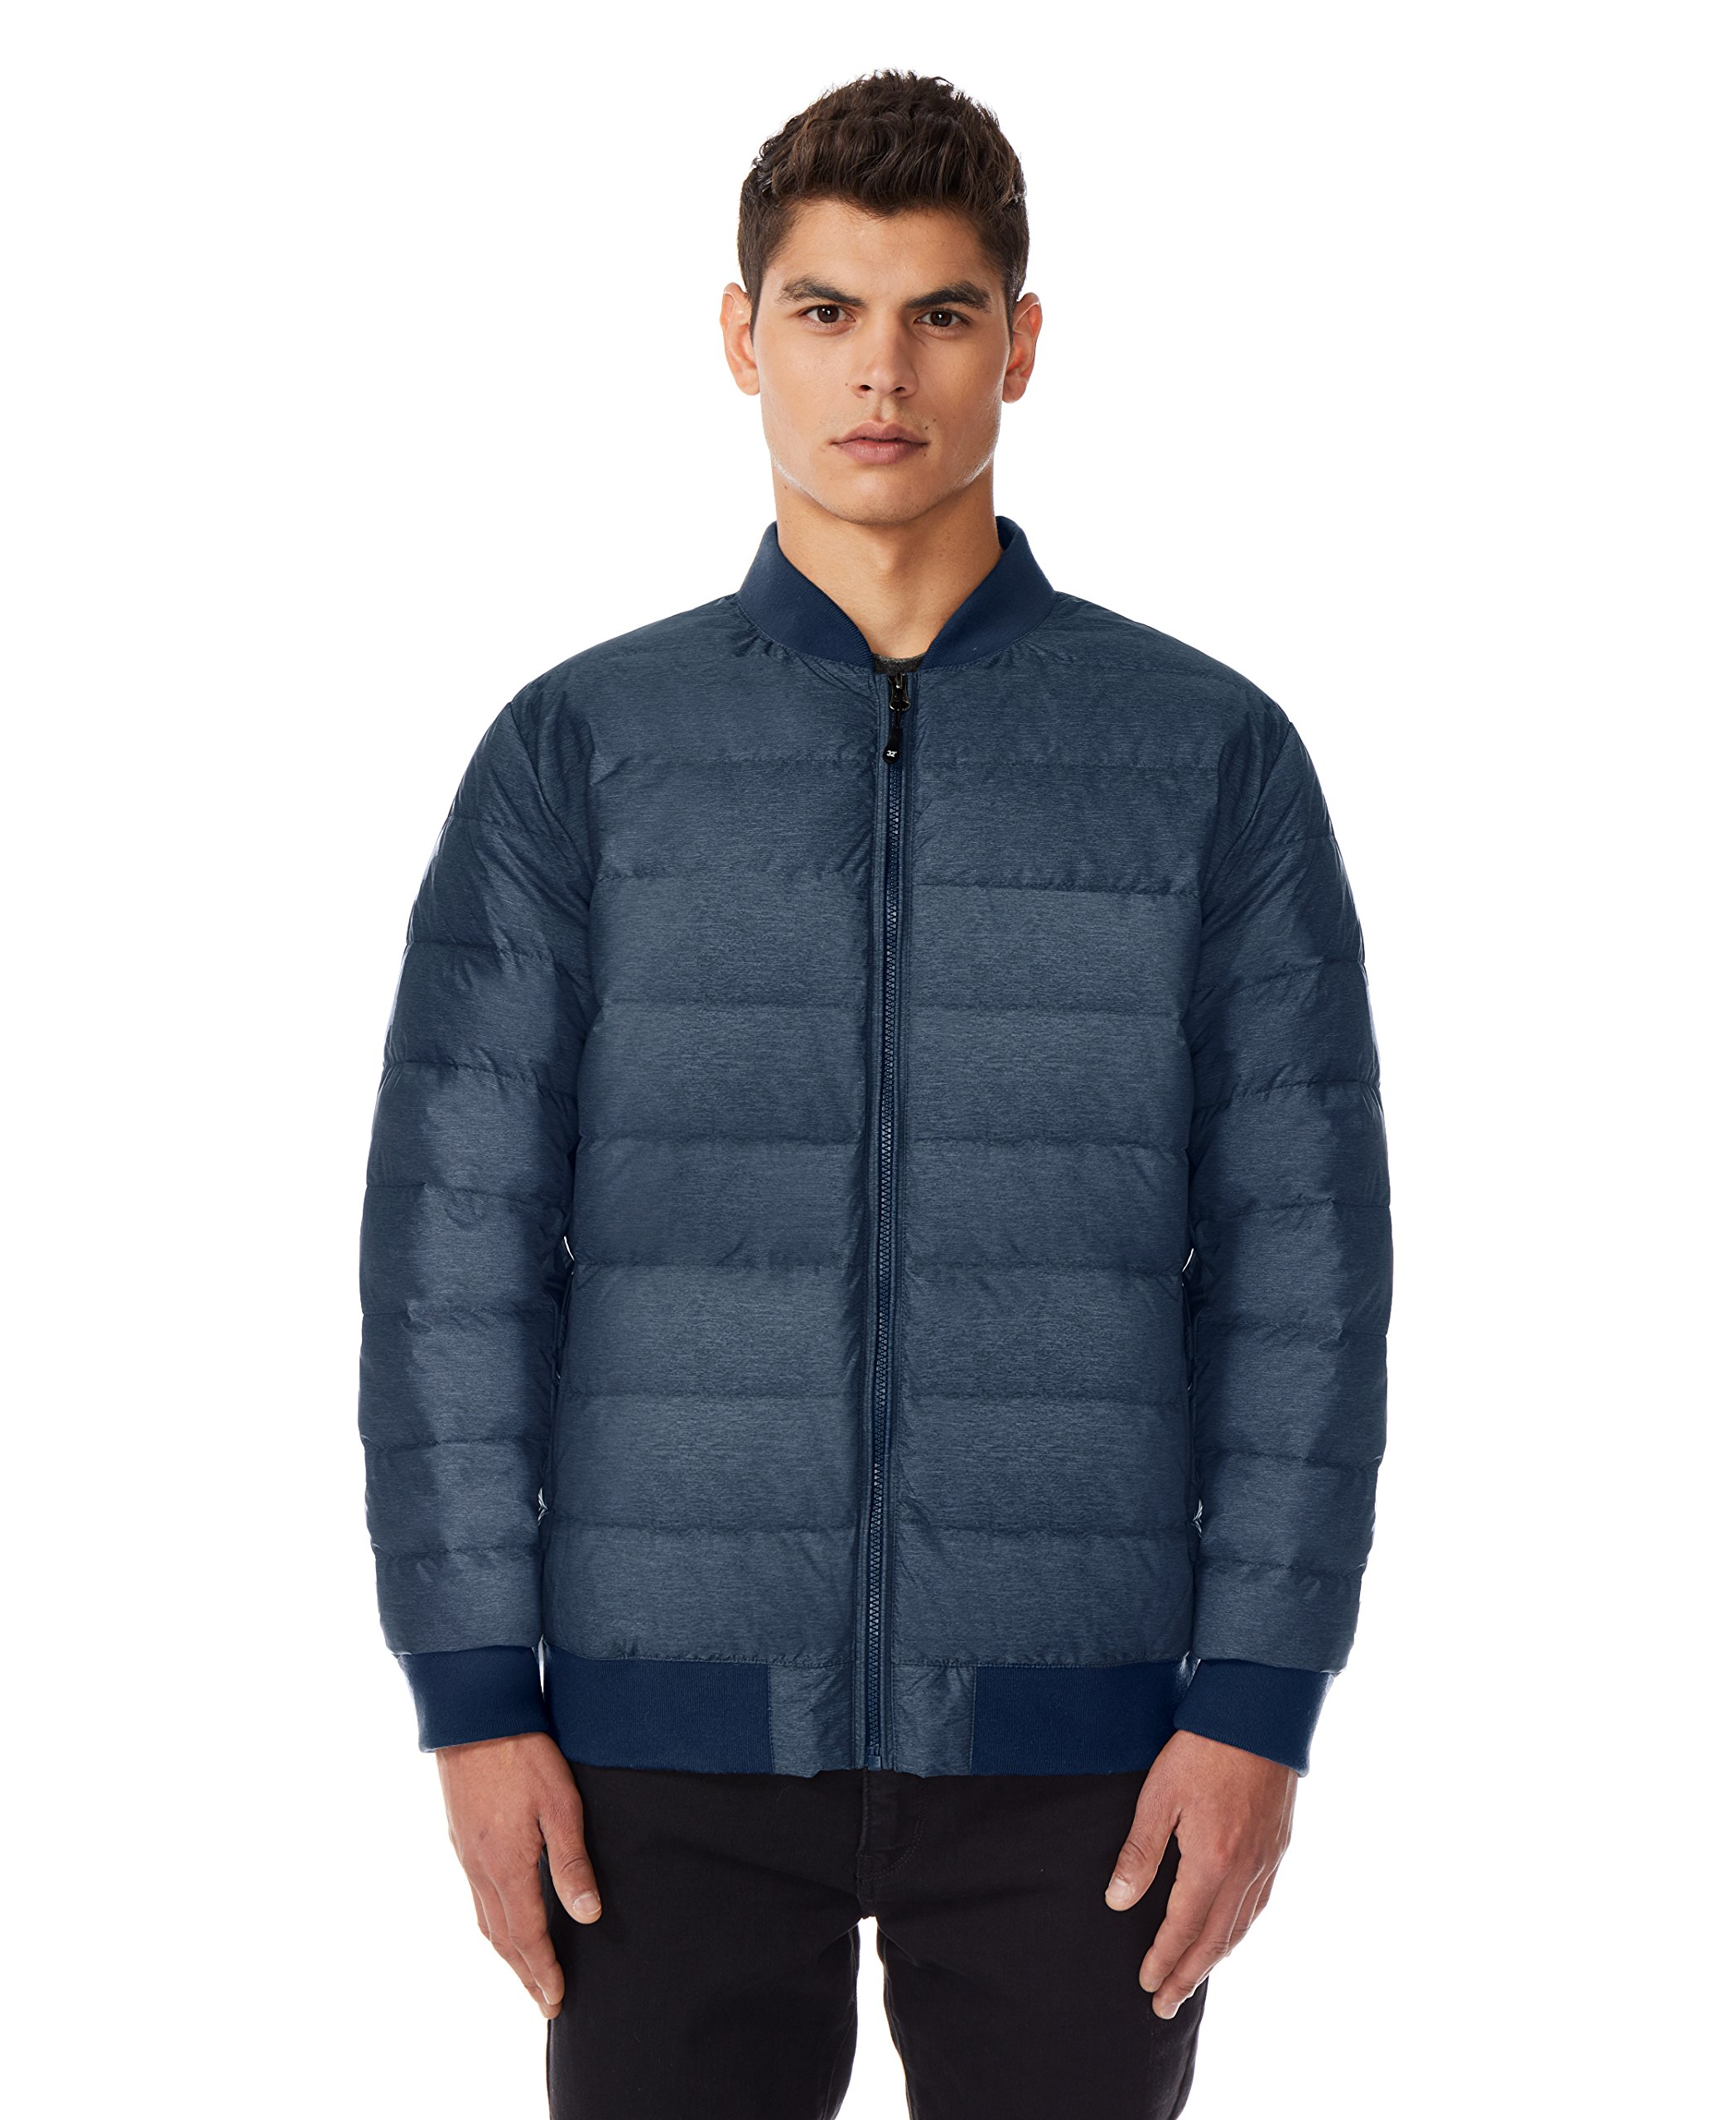 32 DEGREES Mens Light Down Packable Bomber Jacket -Denim Blue-XL by 32 DEGREES